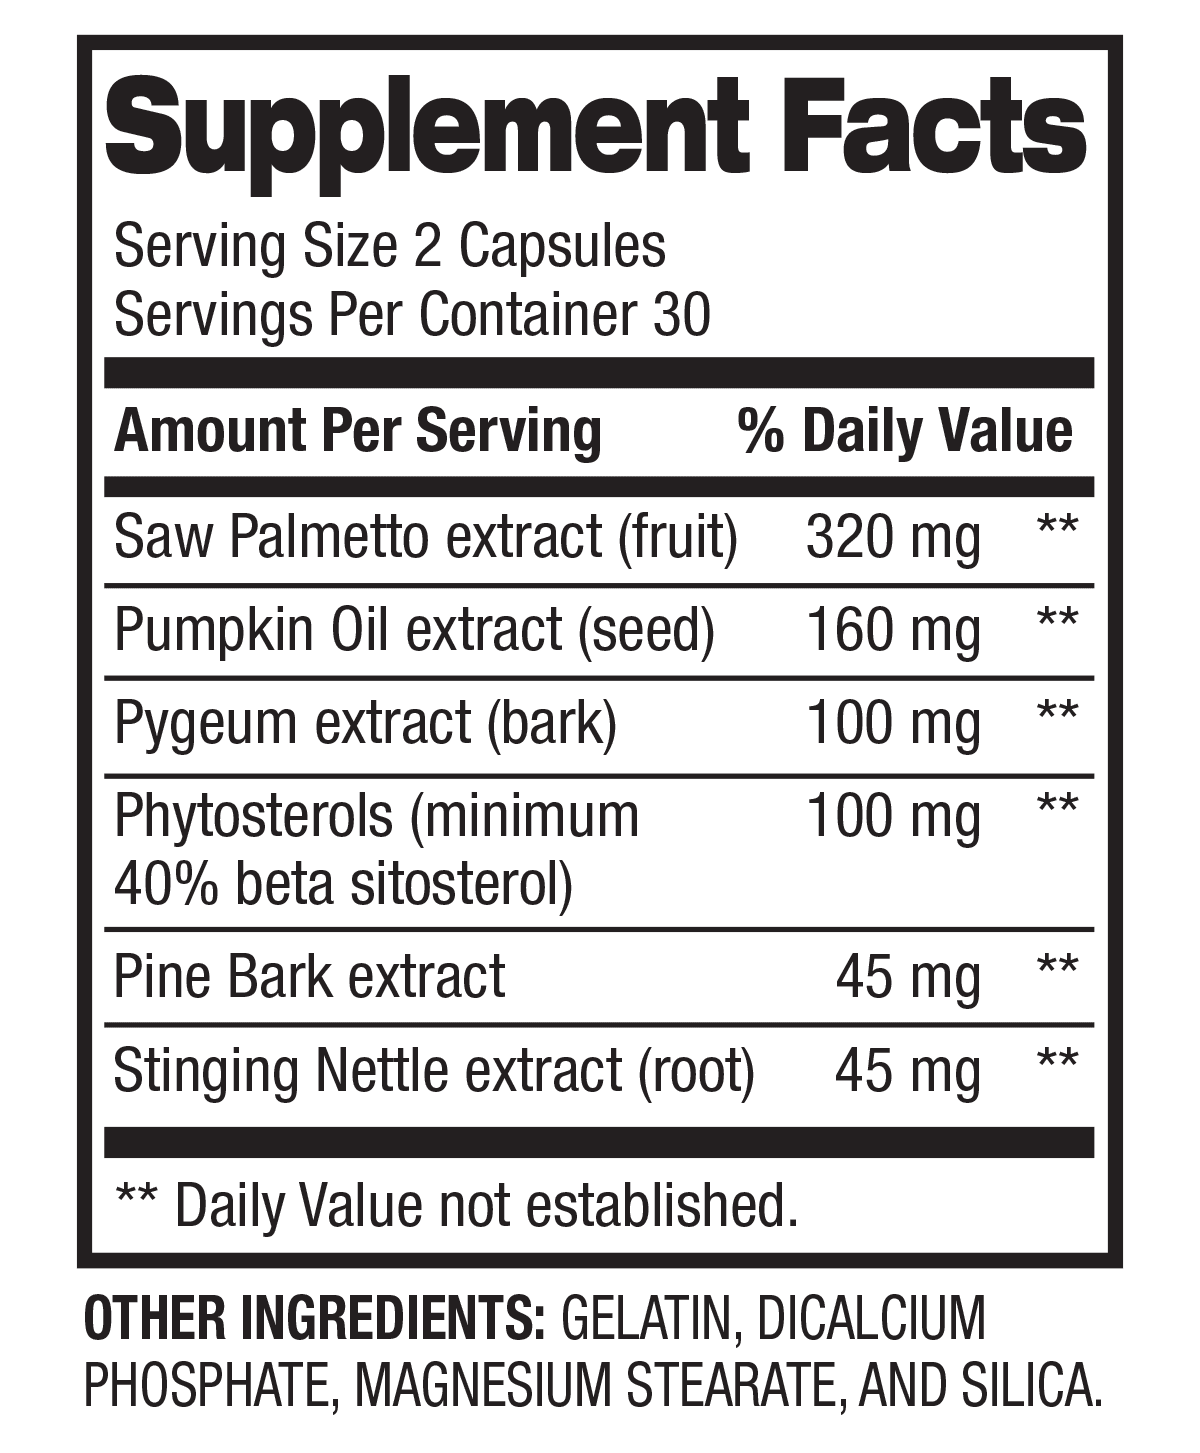 Prostate Support - Men's Health & Wellness (30 Servings) Supplement Facts